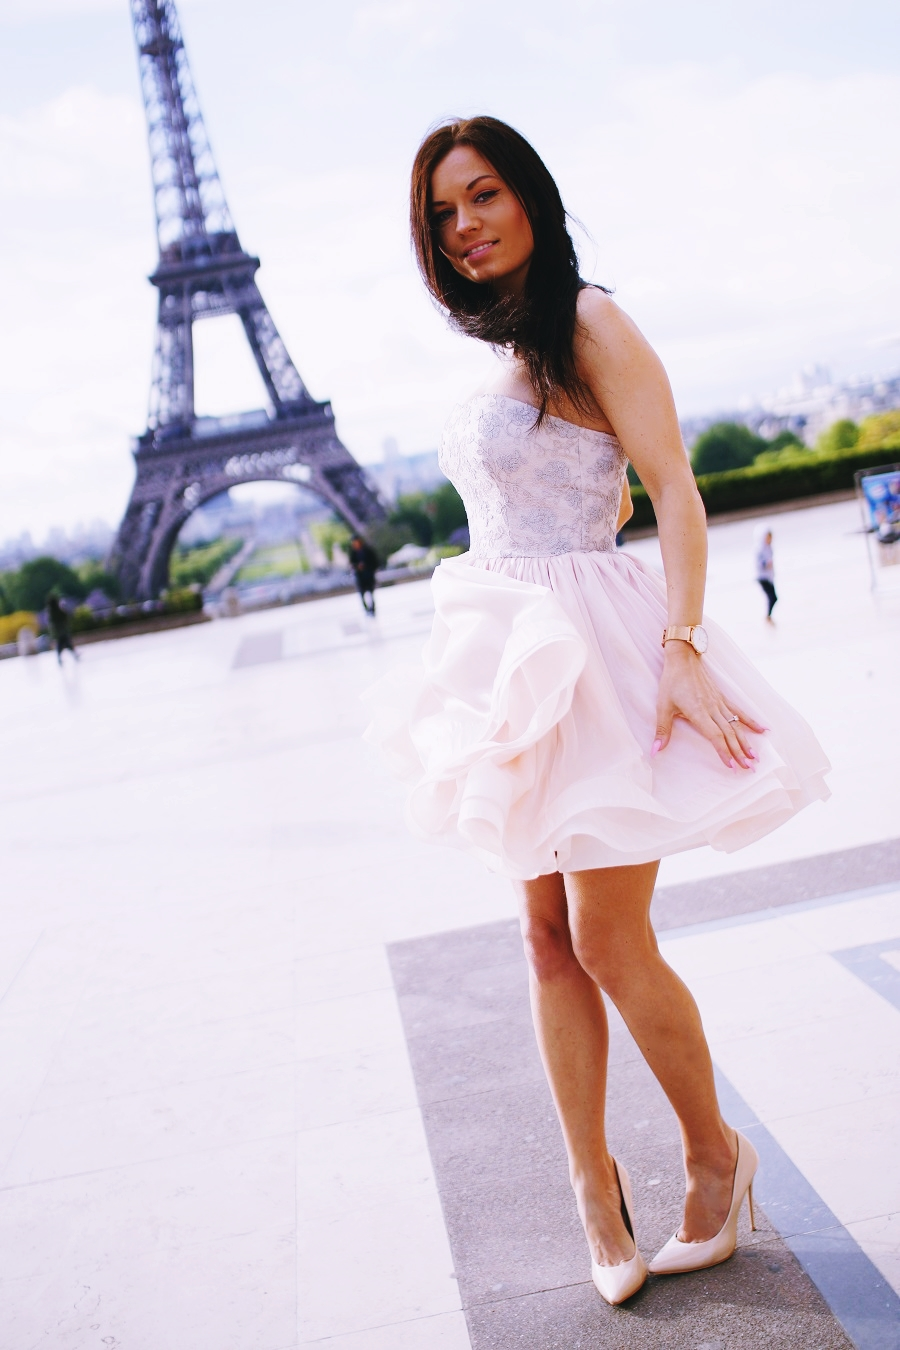 travel to paris and make your dreams come true